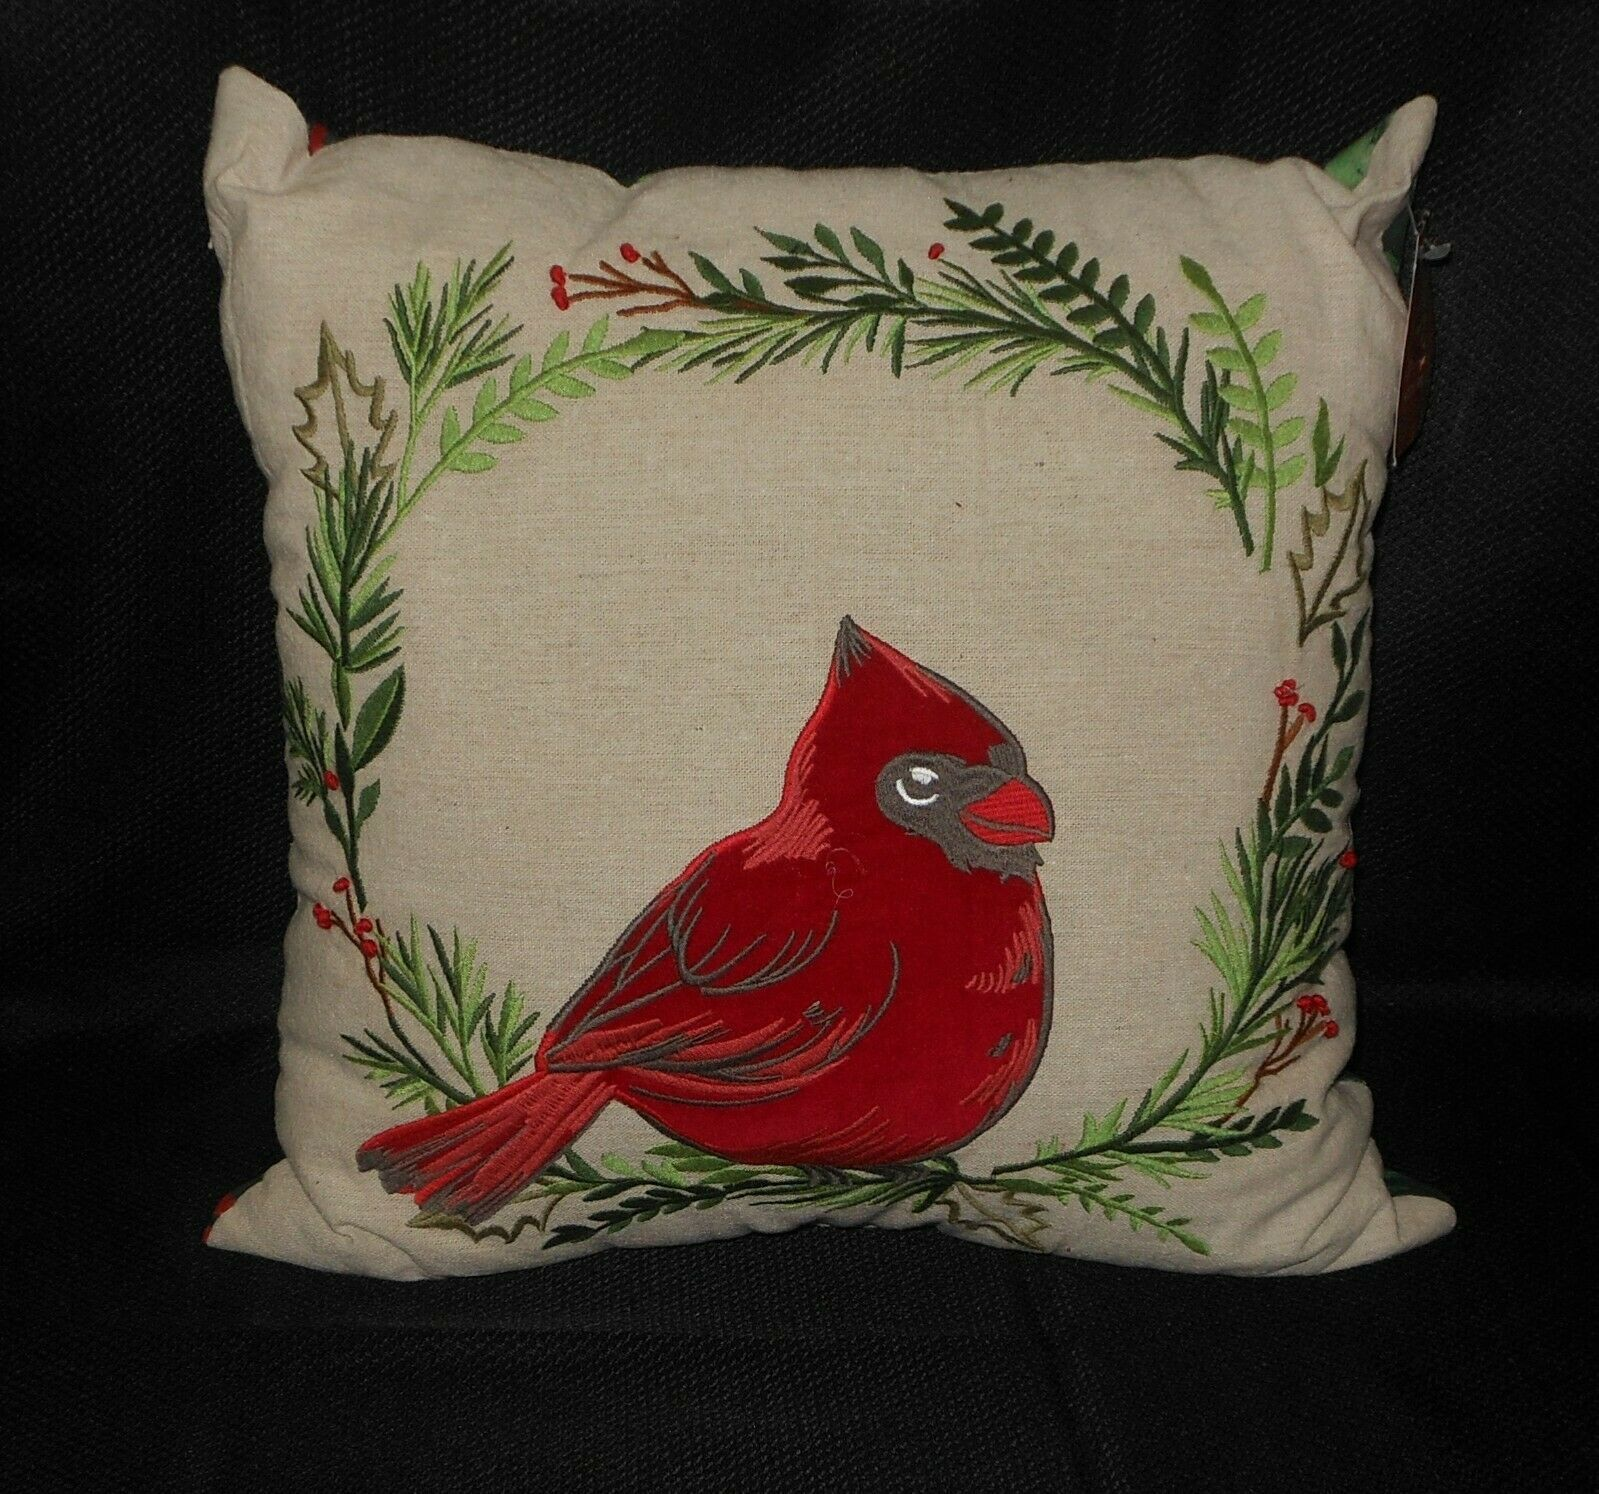 St Nicholas Christmas Embroidered Cardinal Wool Throw Pillow NWT FREE SHIPPING - $44.54